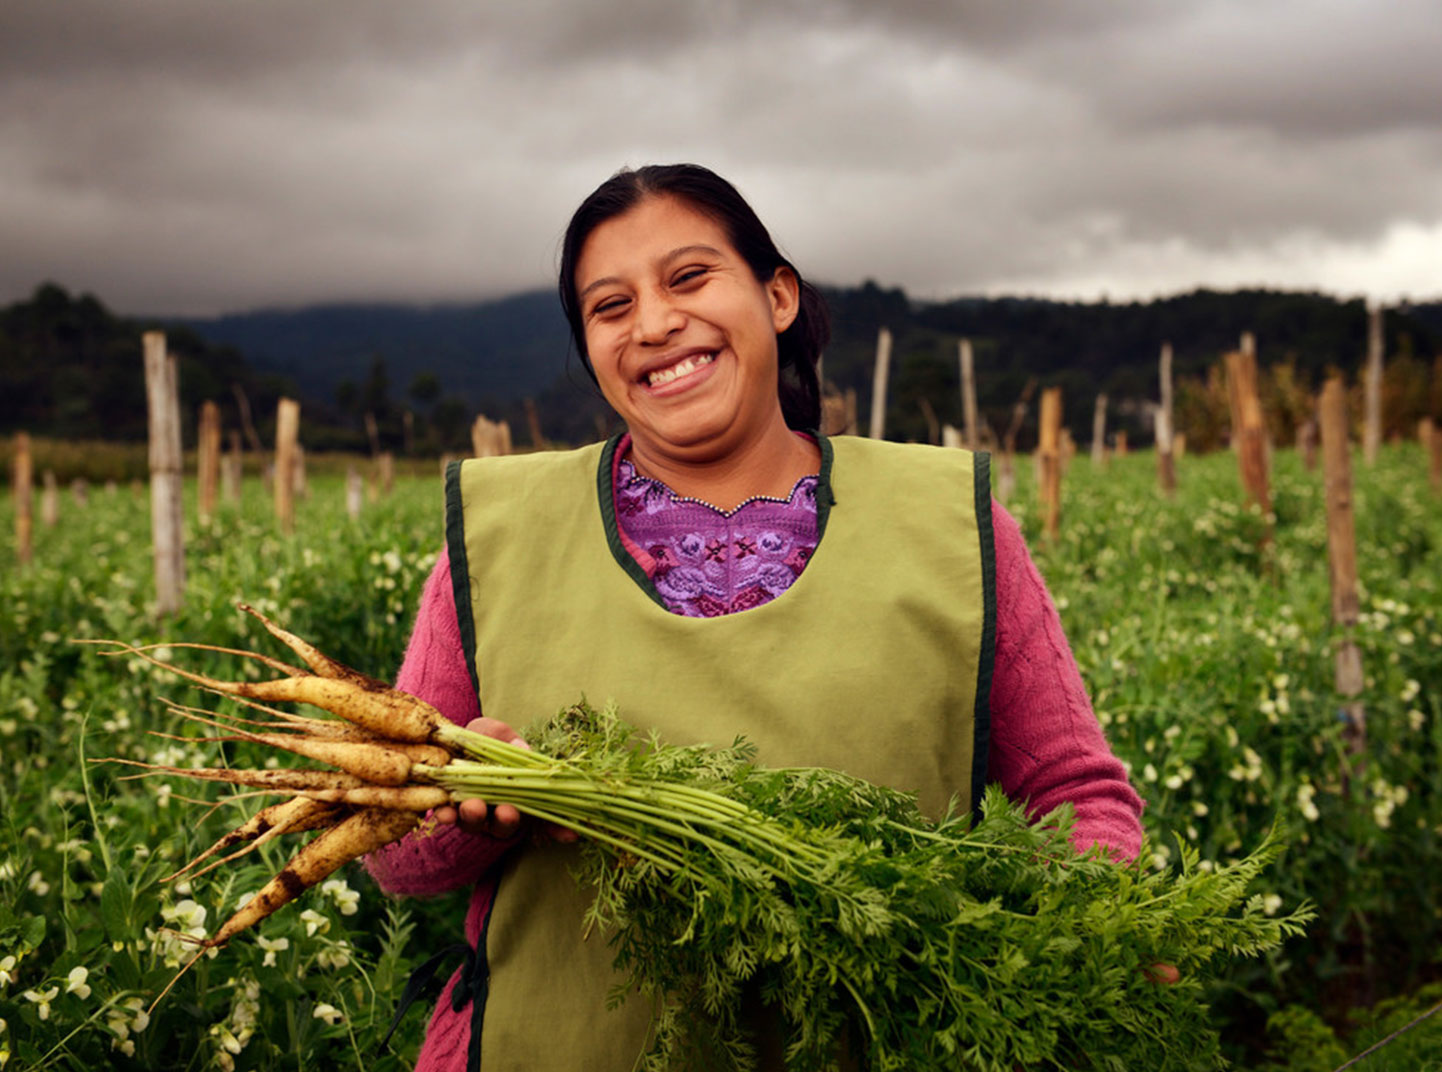 A woman stands in the middle of a large field and beams while showing off some carrots she's just pulled from her crop garden.